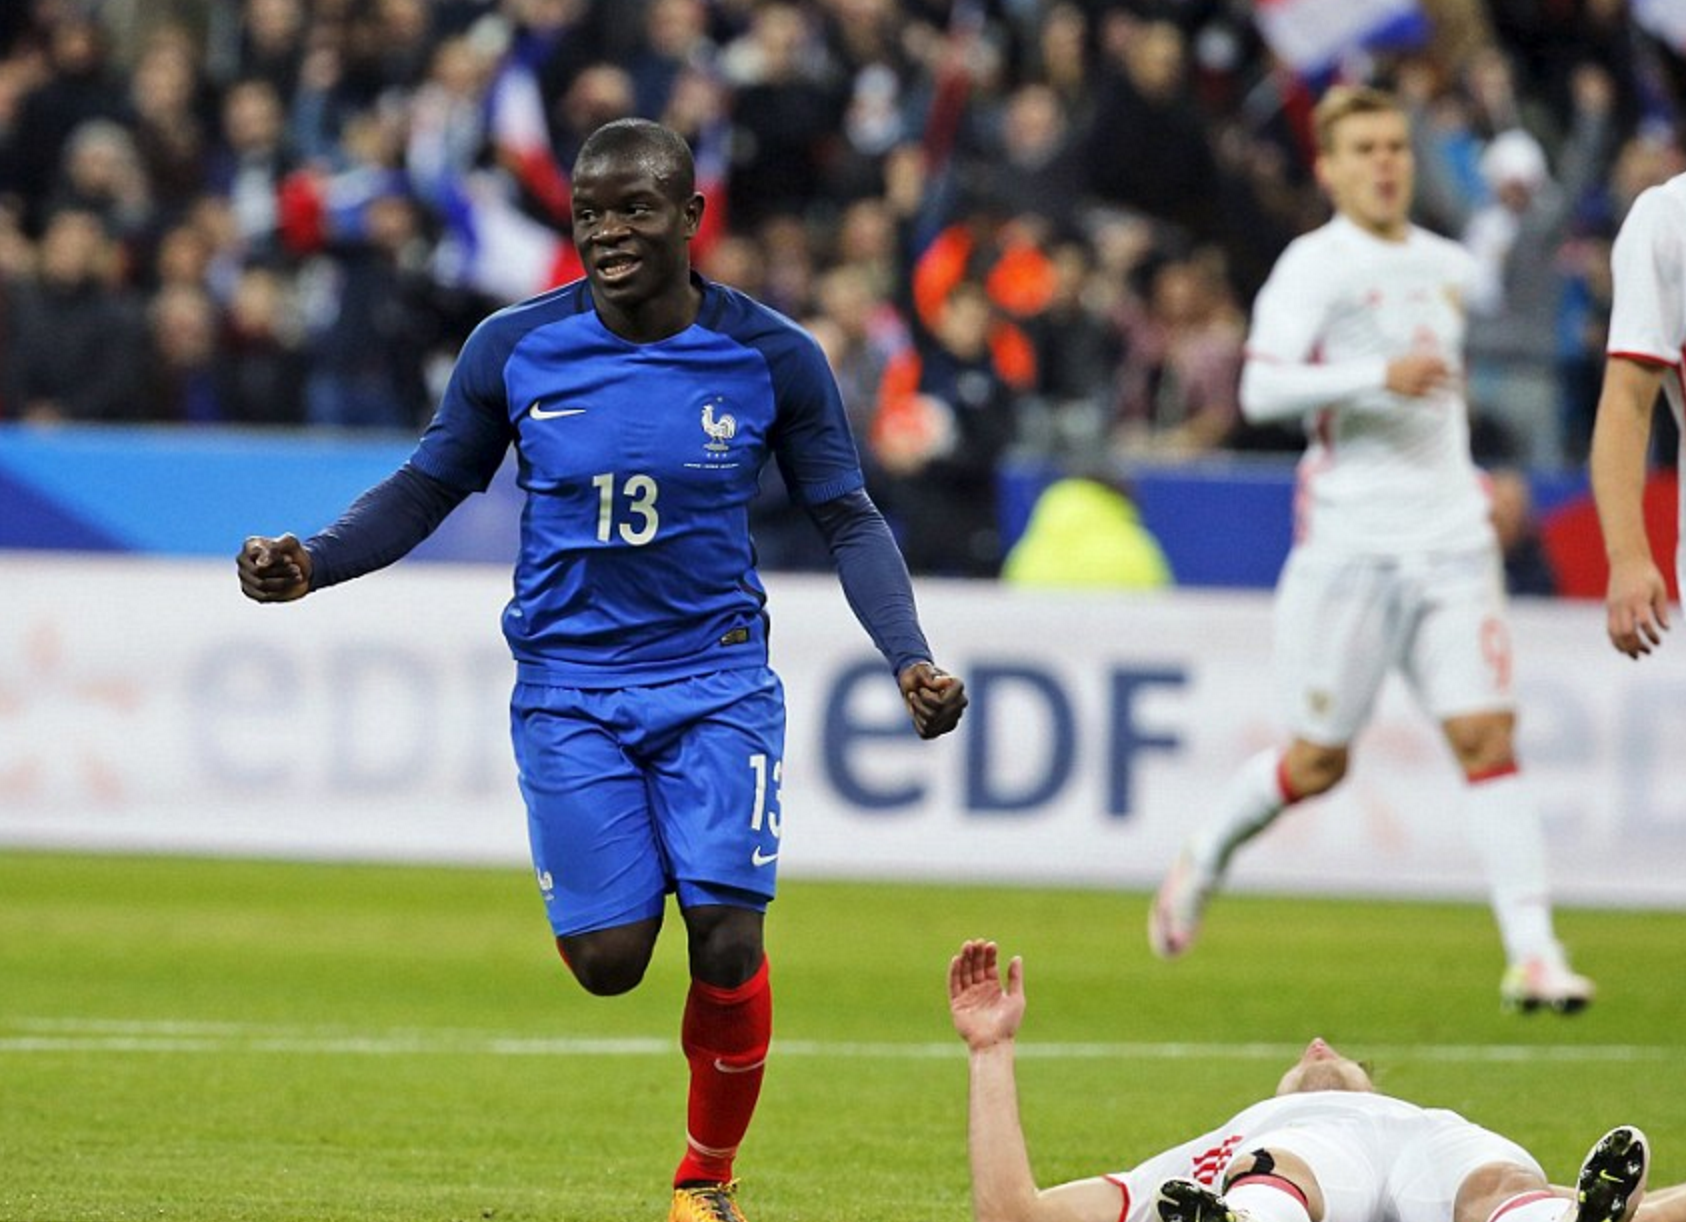 N Golo Kanté une ascension fulgurante – Soccer Politics The